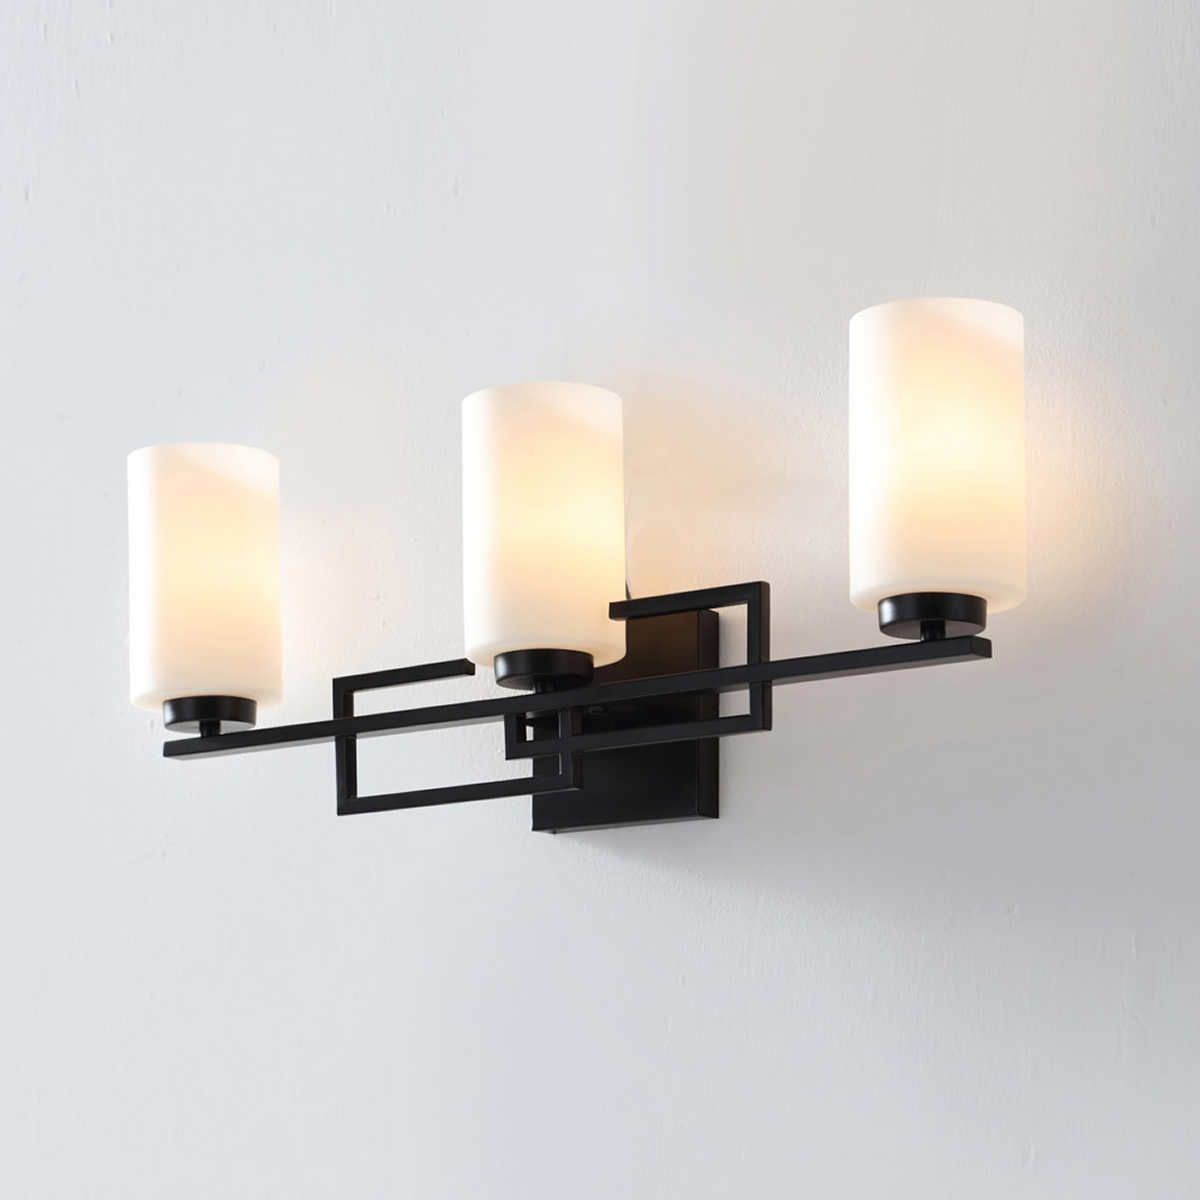 Pin By Sde06 On Costco Vanity Lighting Candle Sconces Wall Lights